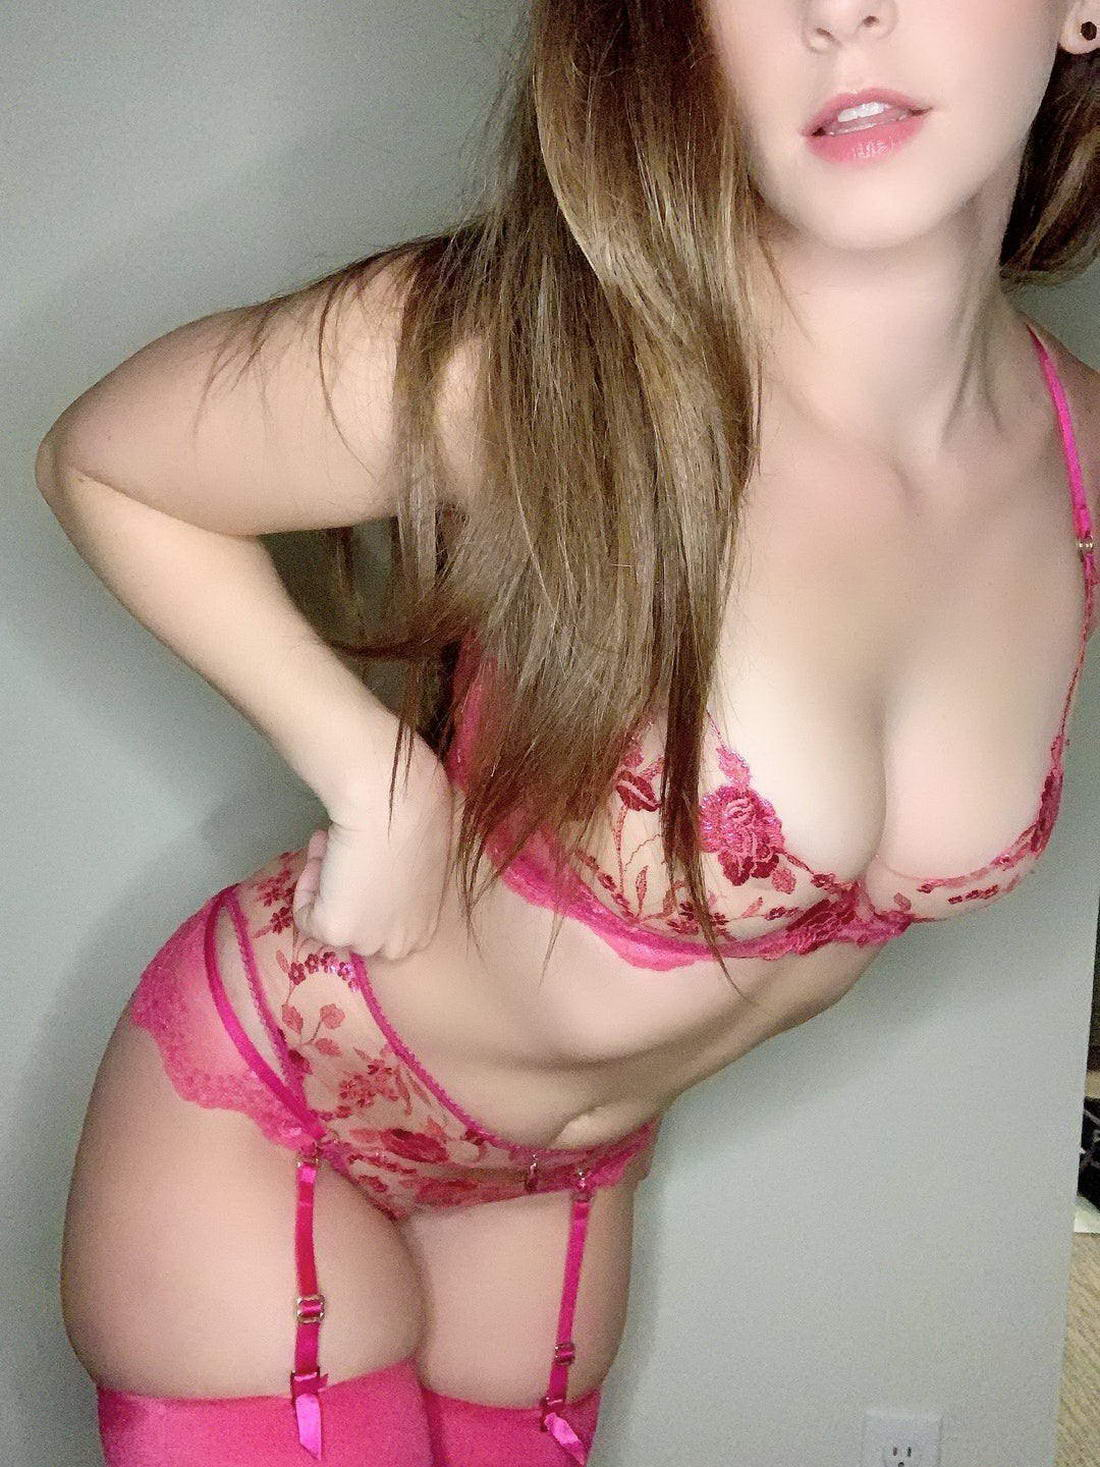 Hot Girls In Lingerie You Must See (39 Photos + 4 GIFs)